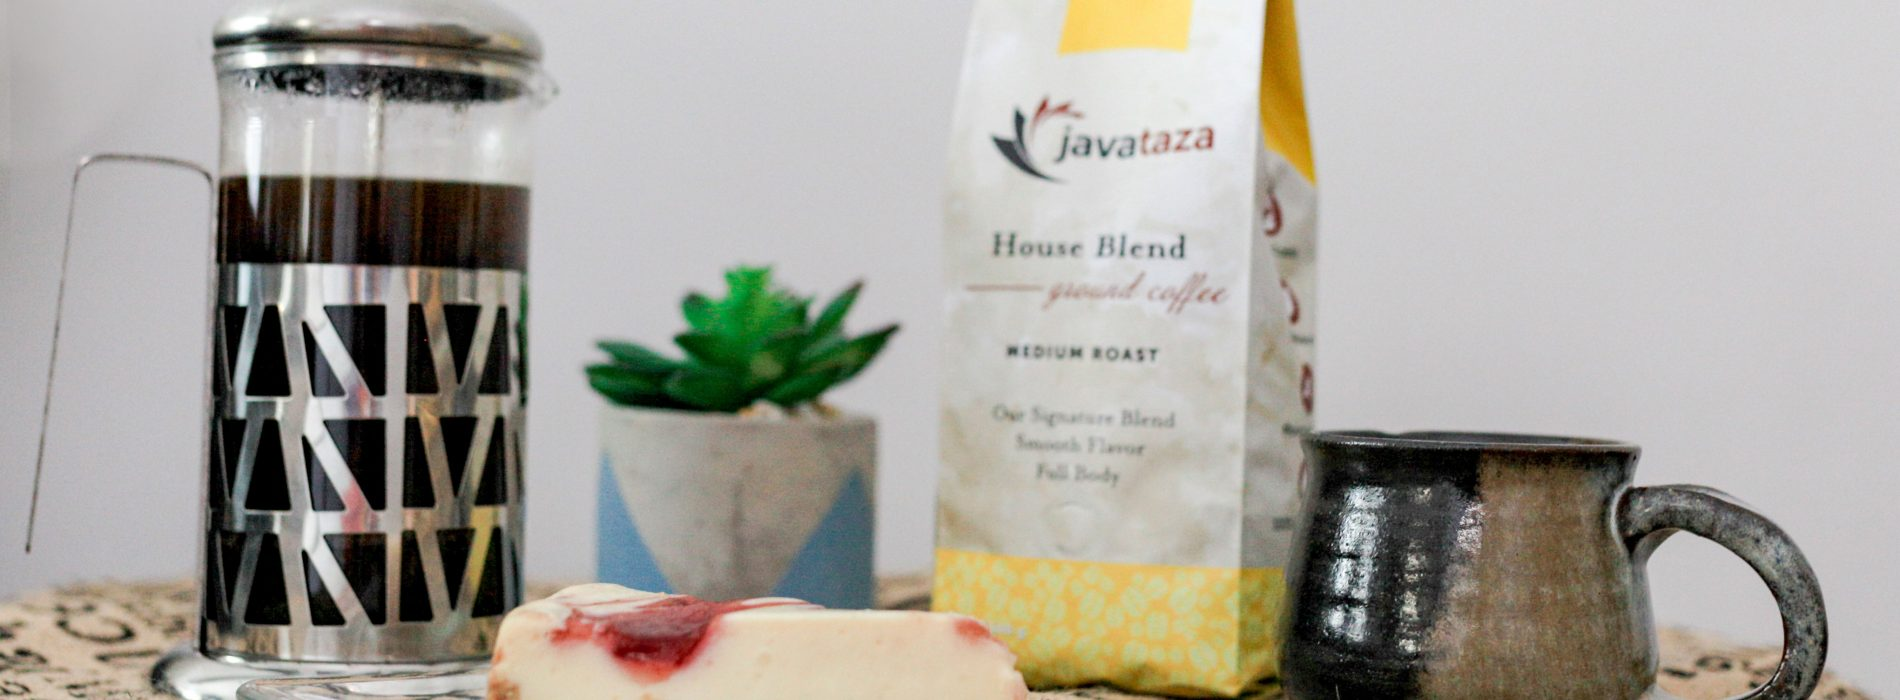 fresh coffee for sale from javataza coffee